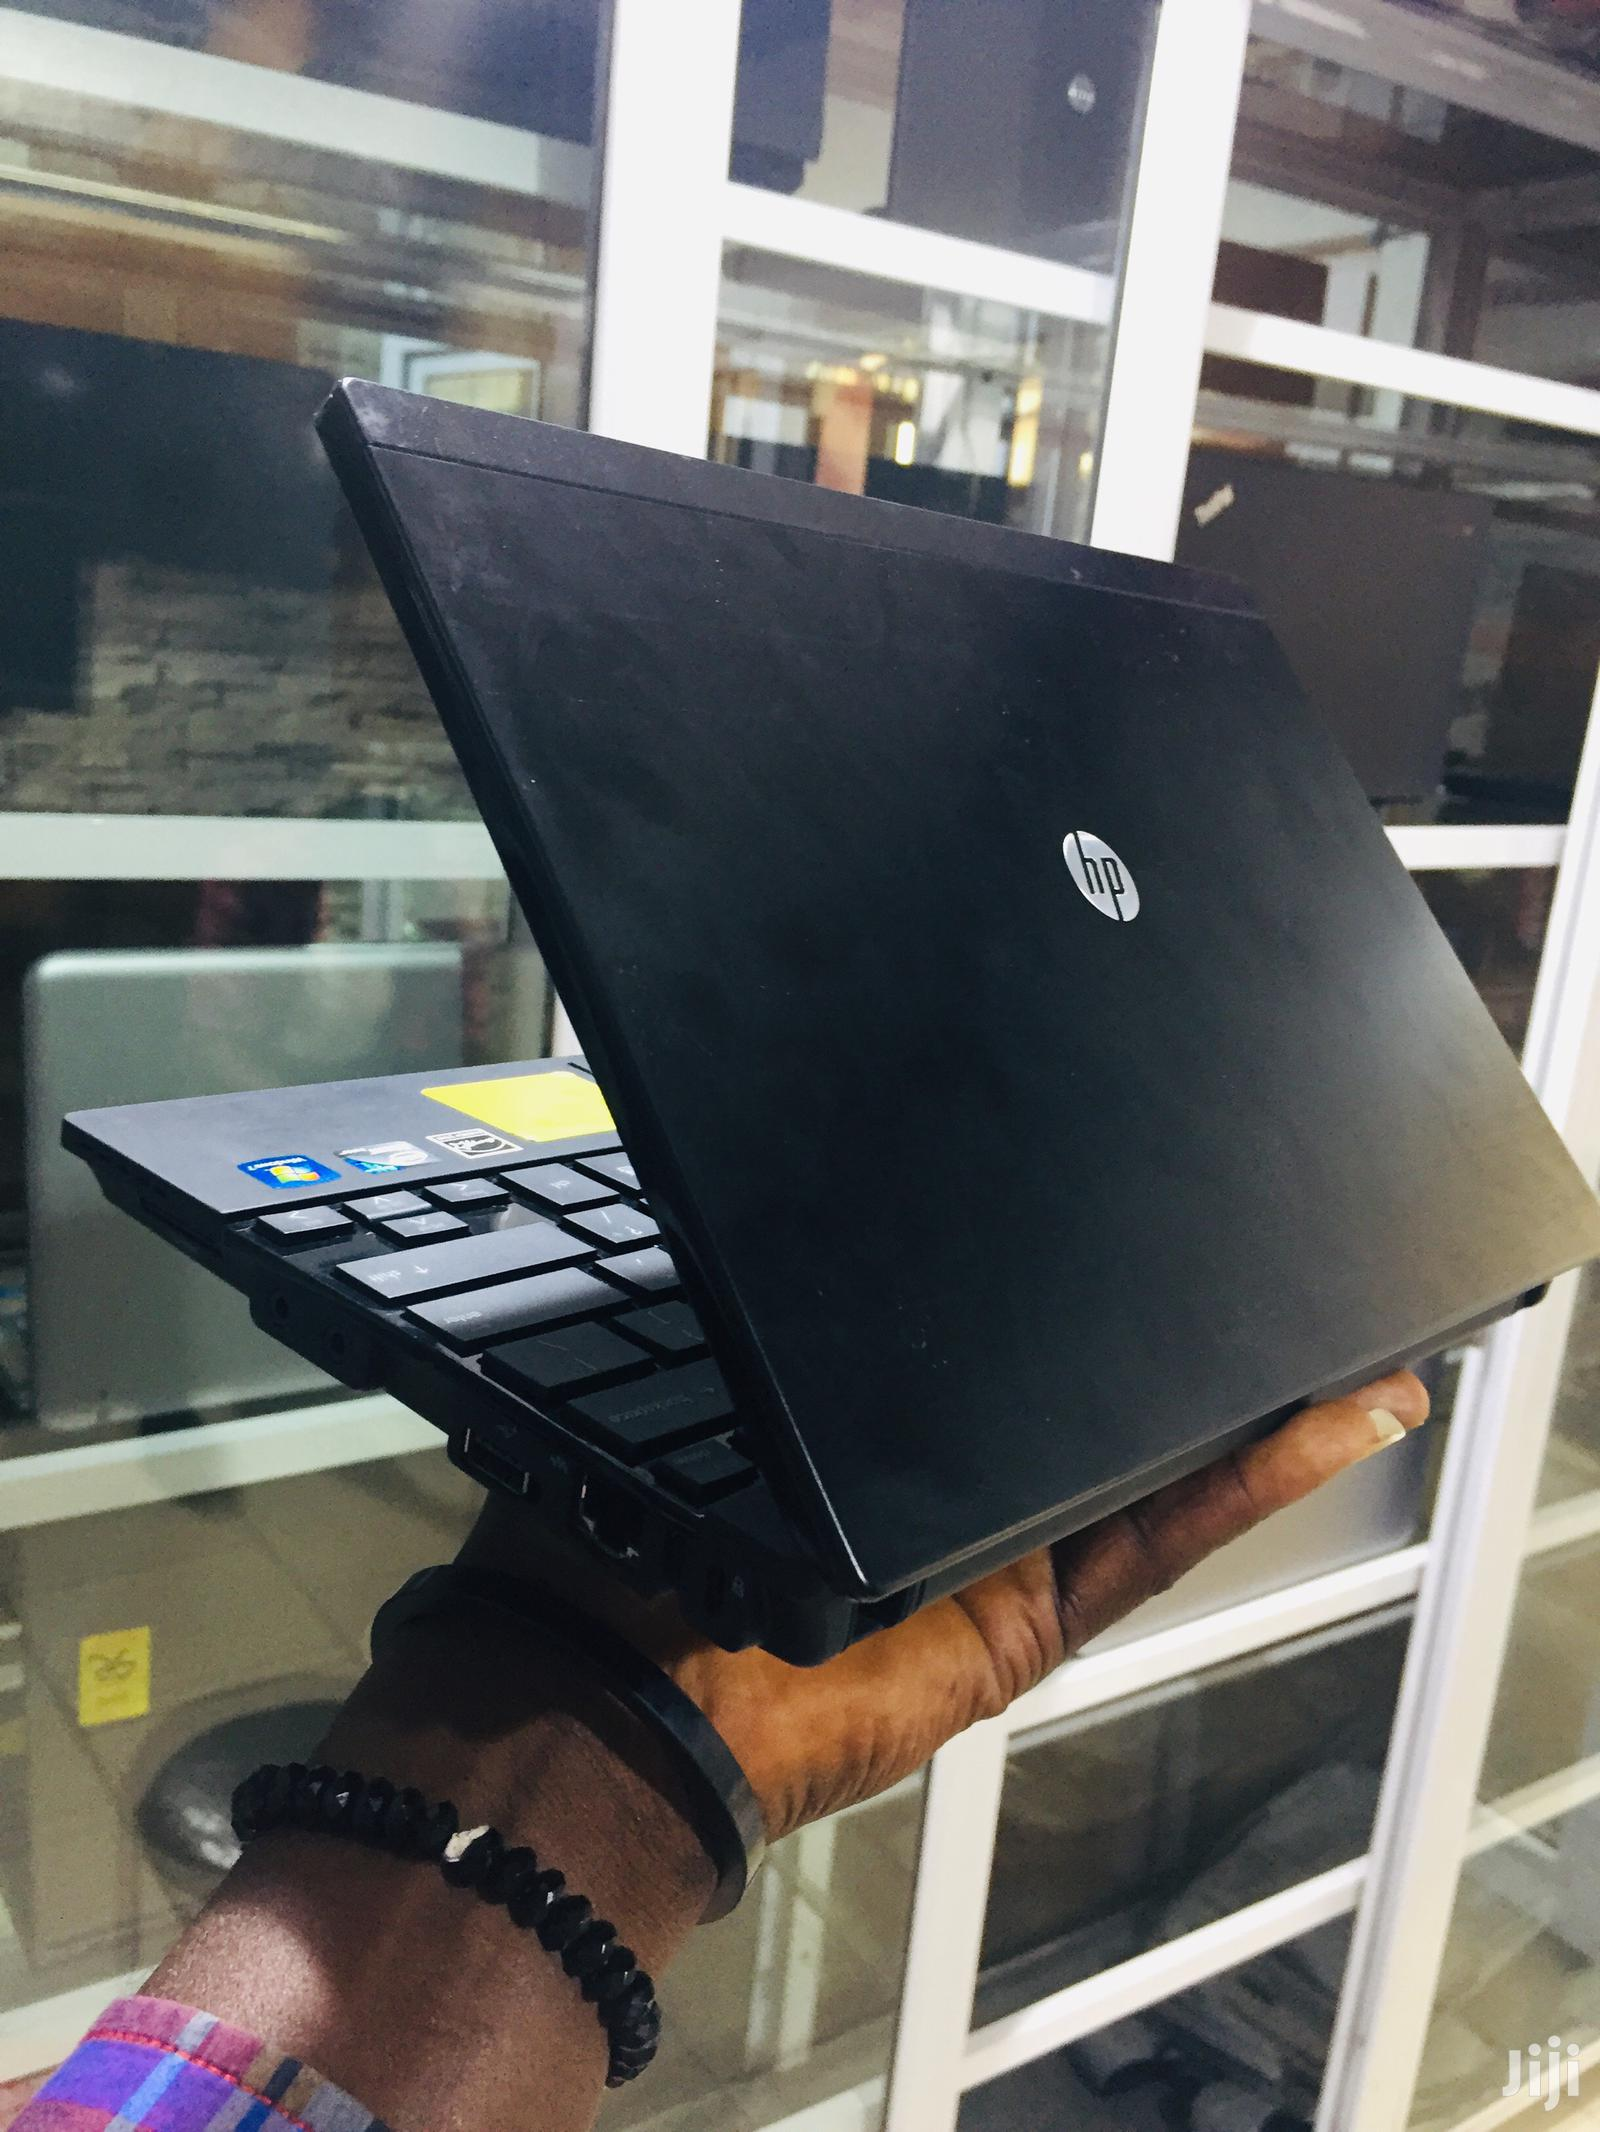 New Laptop HP Mini 5102 2GB Intel Atom HDD 160GB | Laptops & Computers for sale in Odorkor, Greater Accra, Ghana